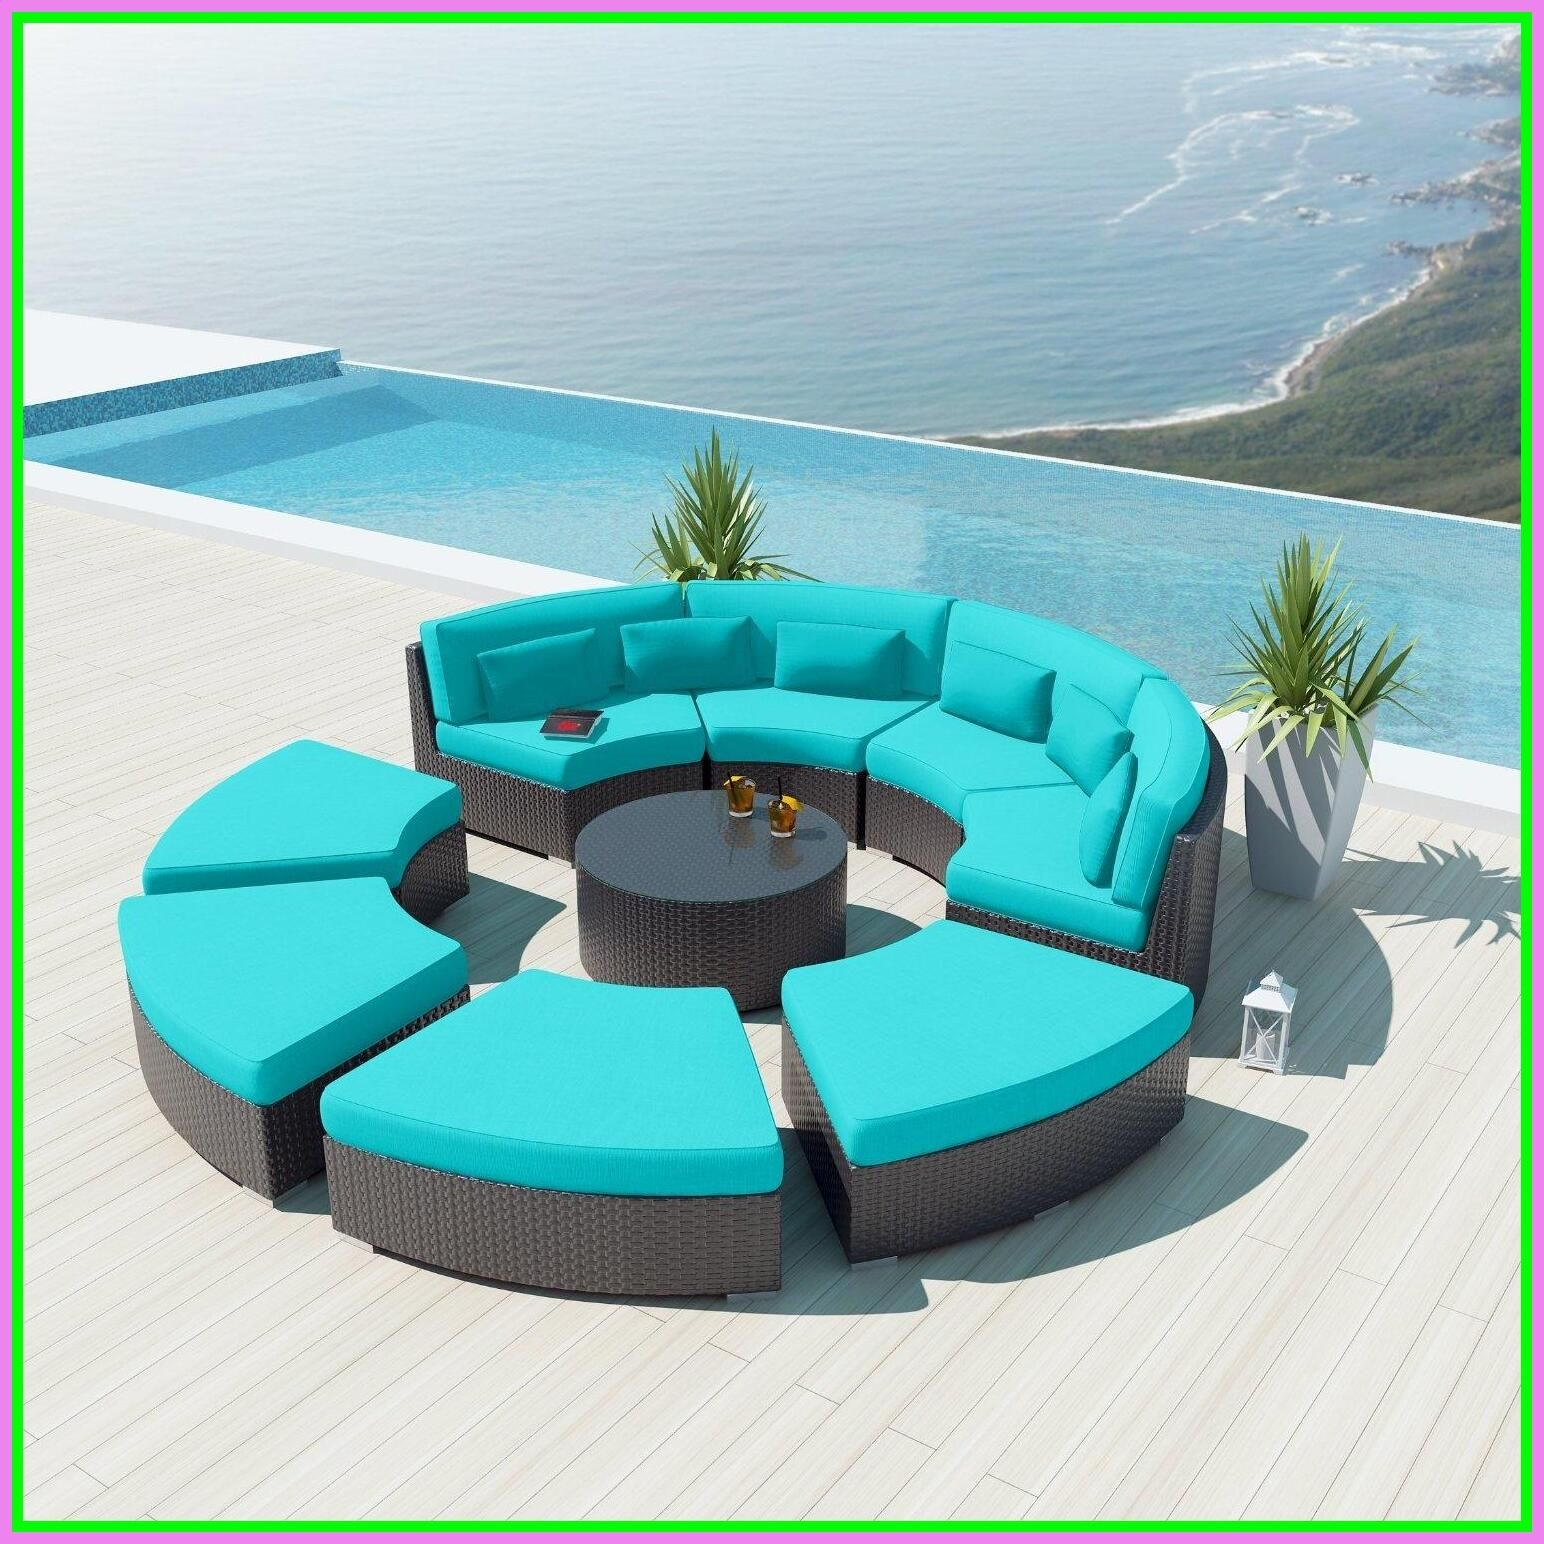 Exceptionnel NEW Uduka 9pcs Outdoor Round Sectional Patio Furniture Espresso Brown  Wicker Sofa Set Turquoise All Weather